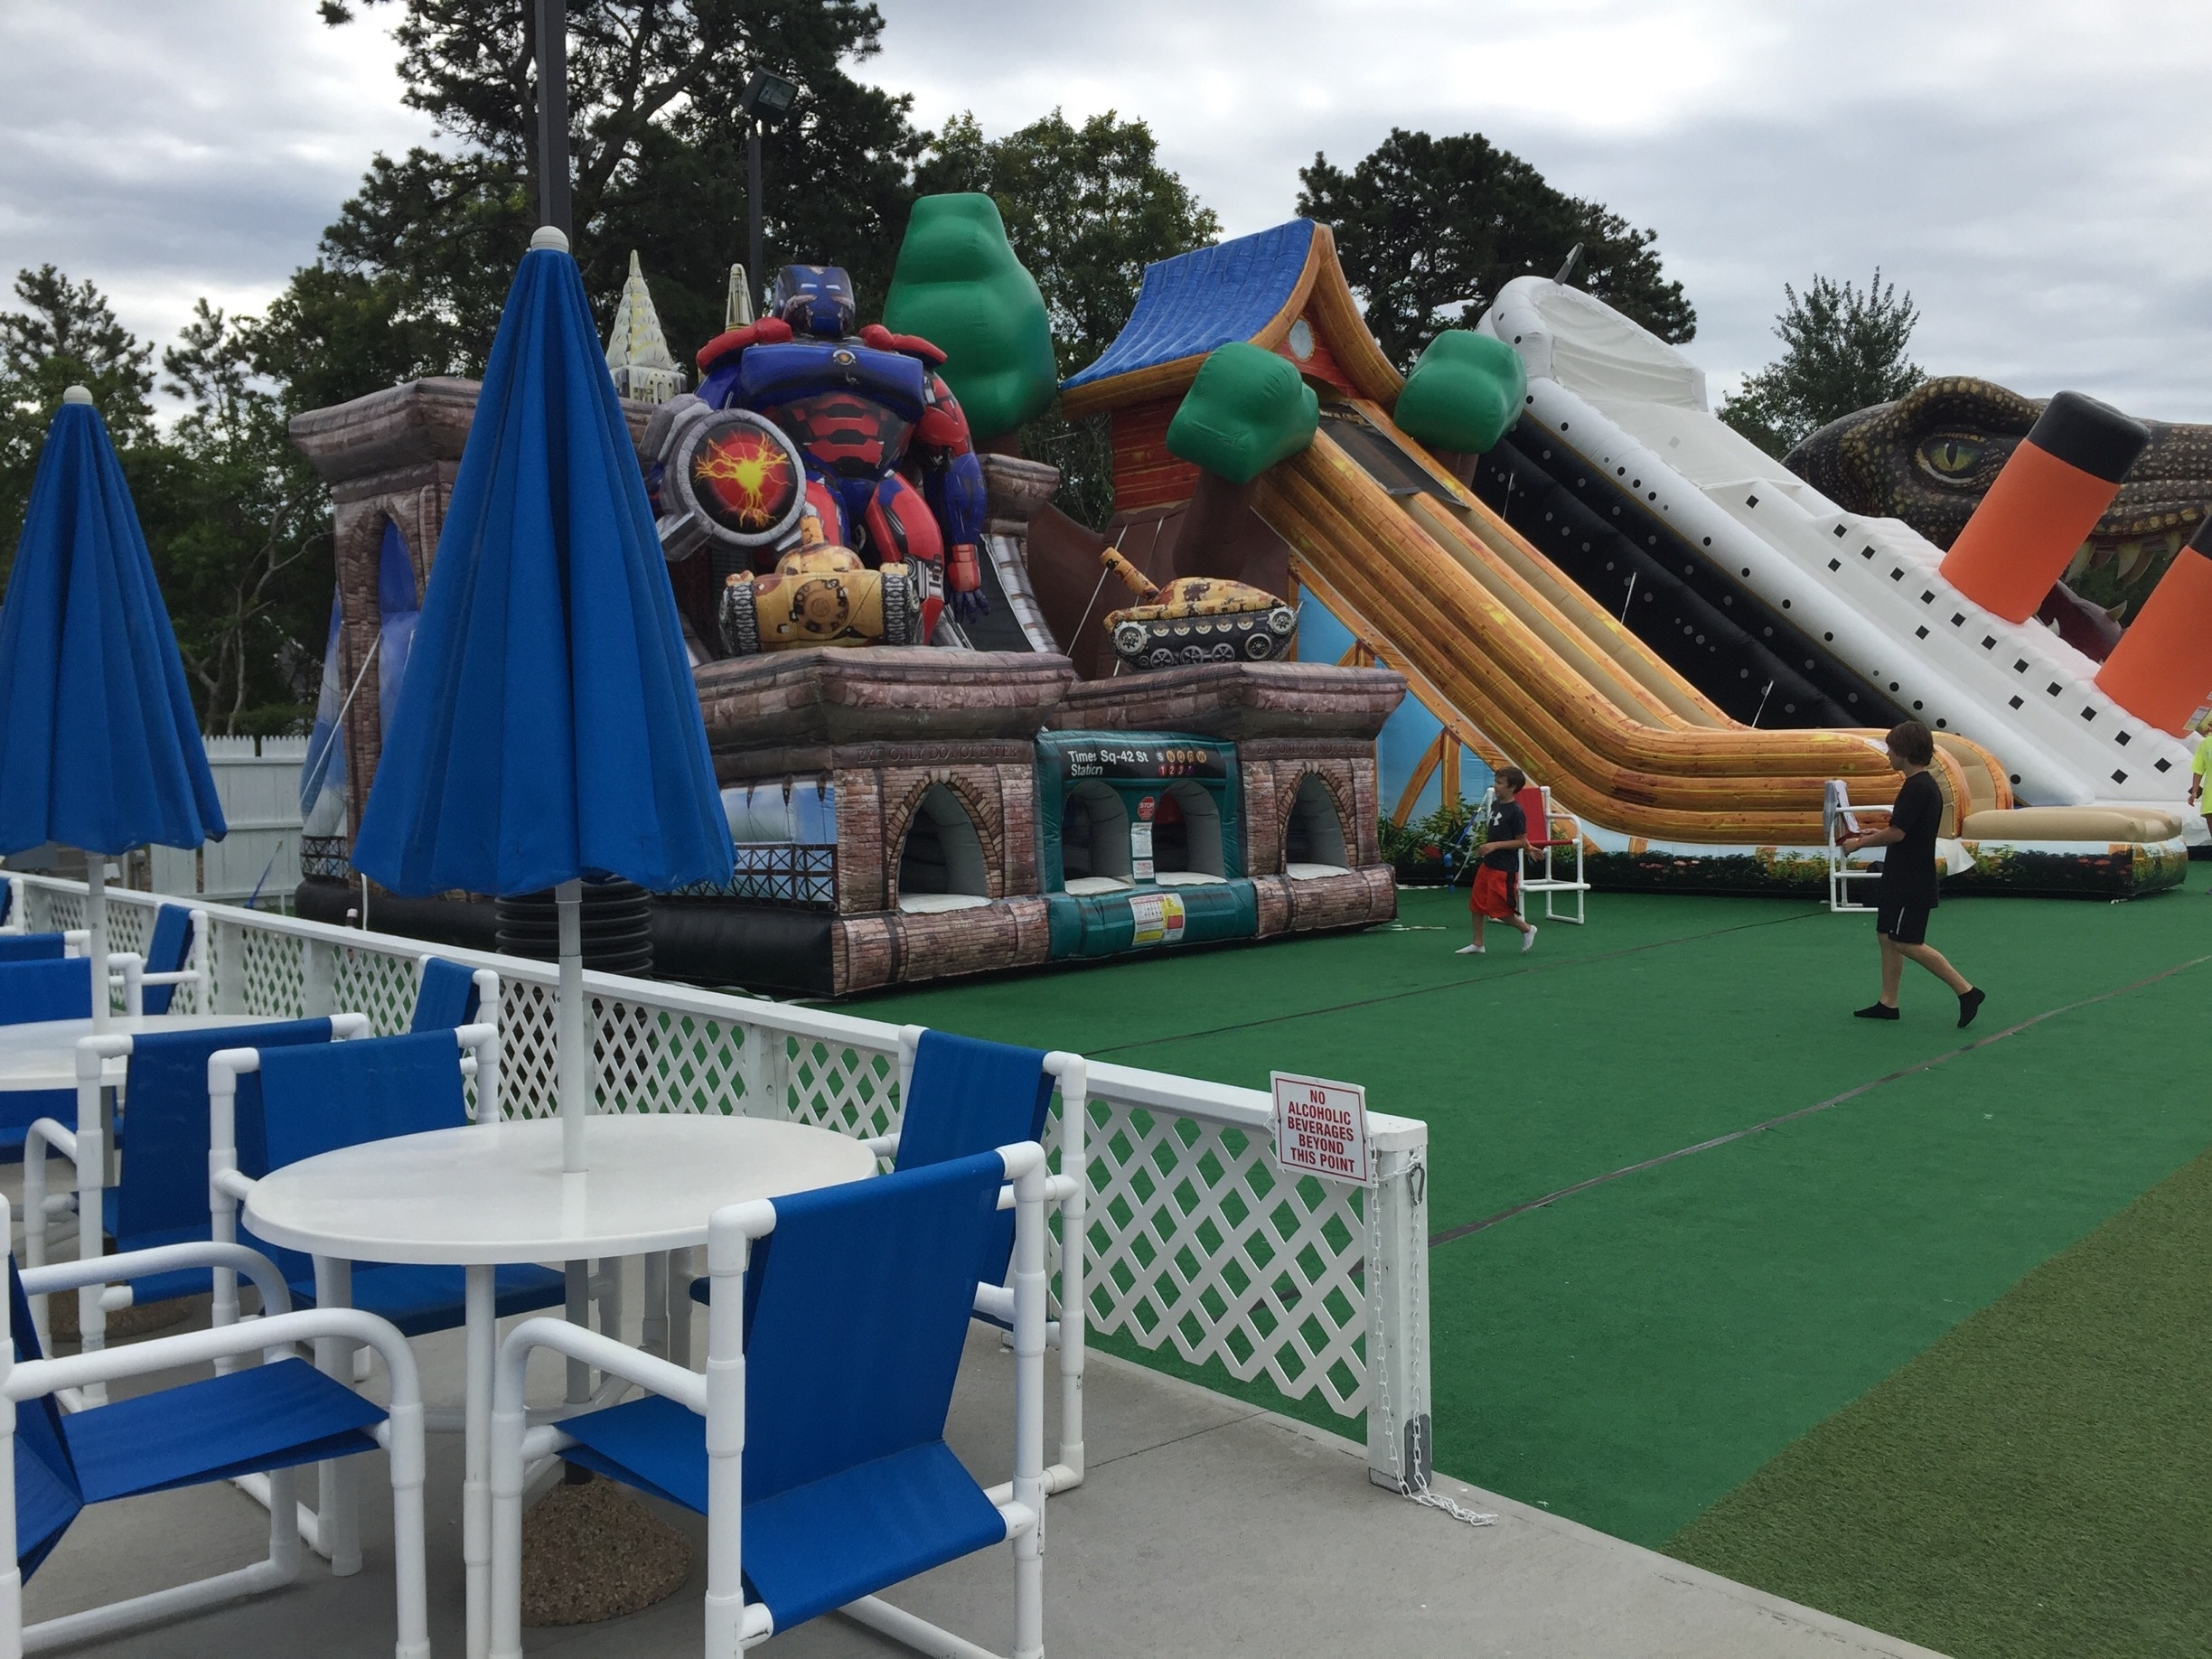 Cape Cod Inflatable Park, West Yarmouth, Massachusetts, Verenigde Staten